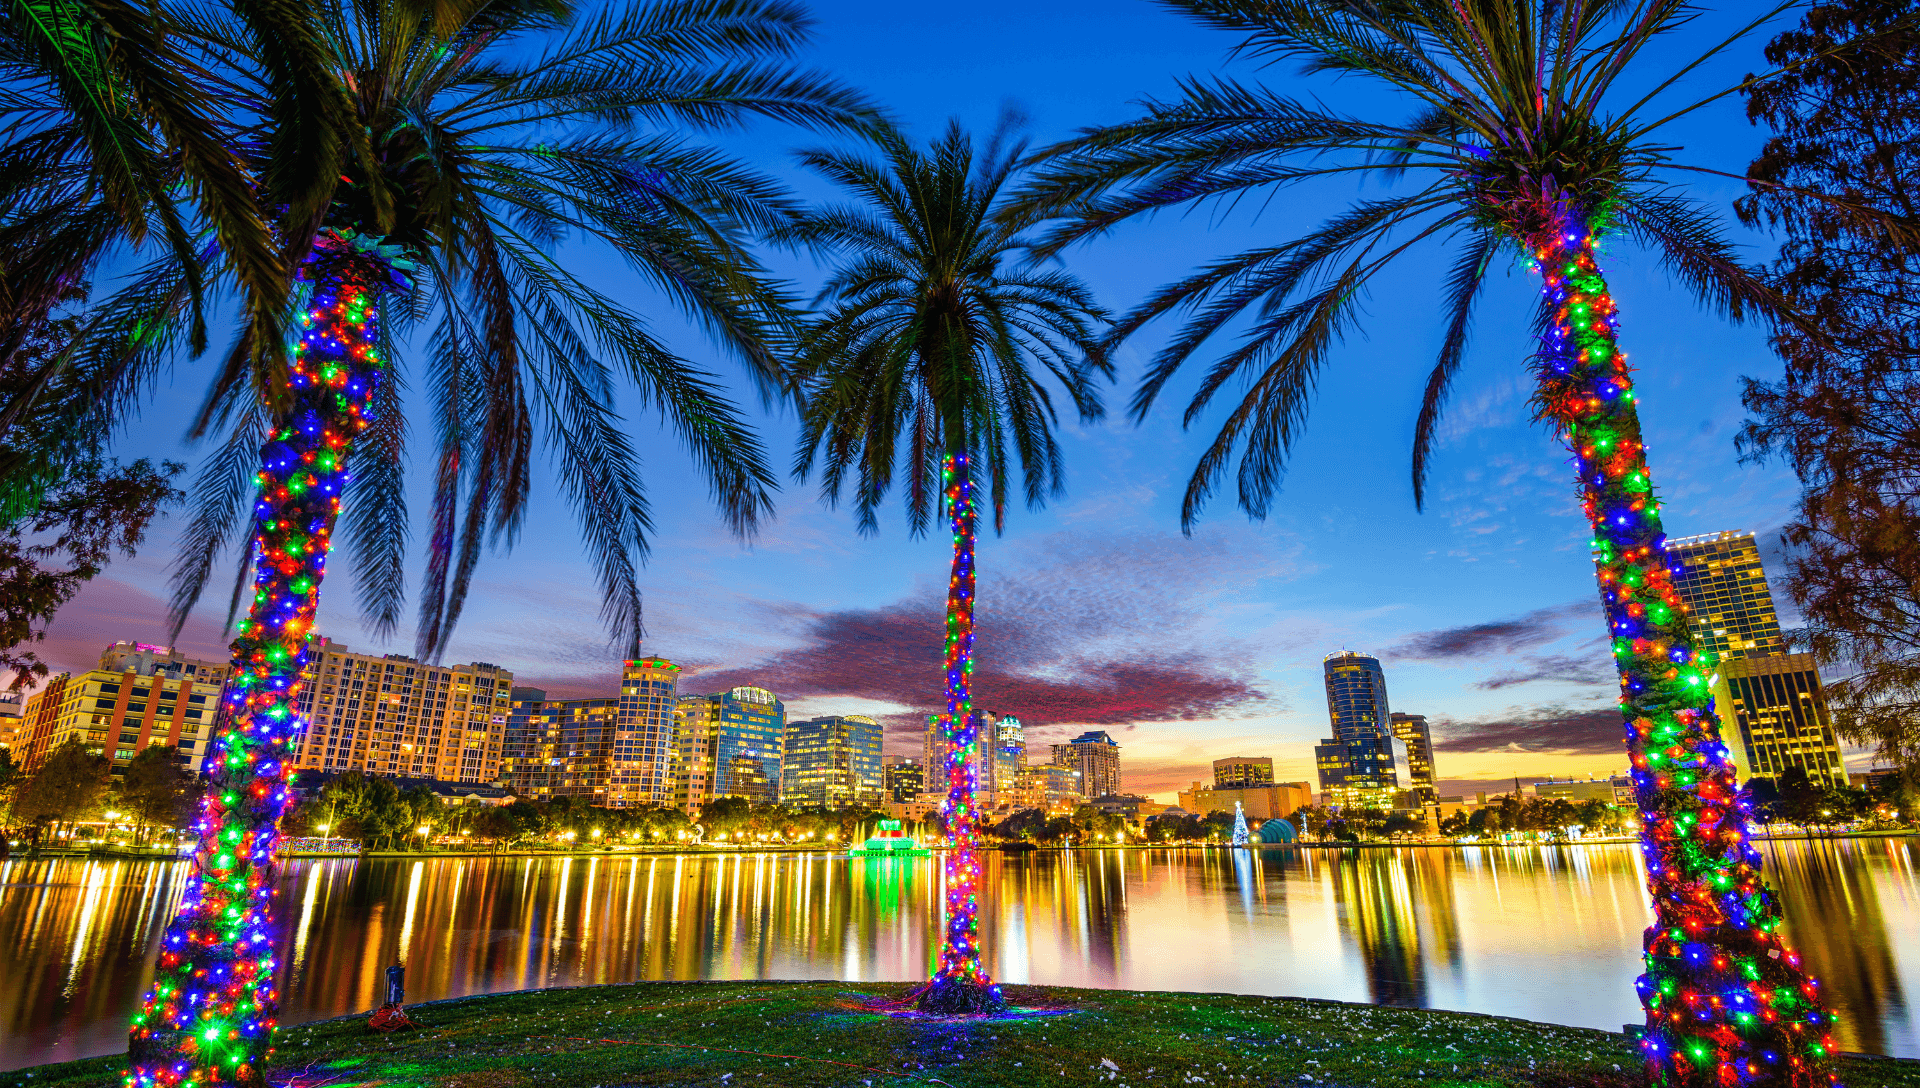 Palm trees with lights wrapped around their trunks are in the foreground. The lit up nightscape of the city of Orlando is the backdrop as the sun is beginning to set.